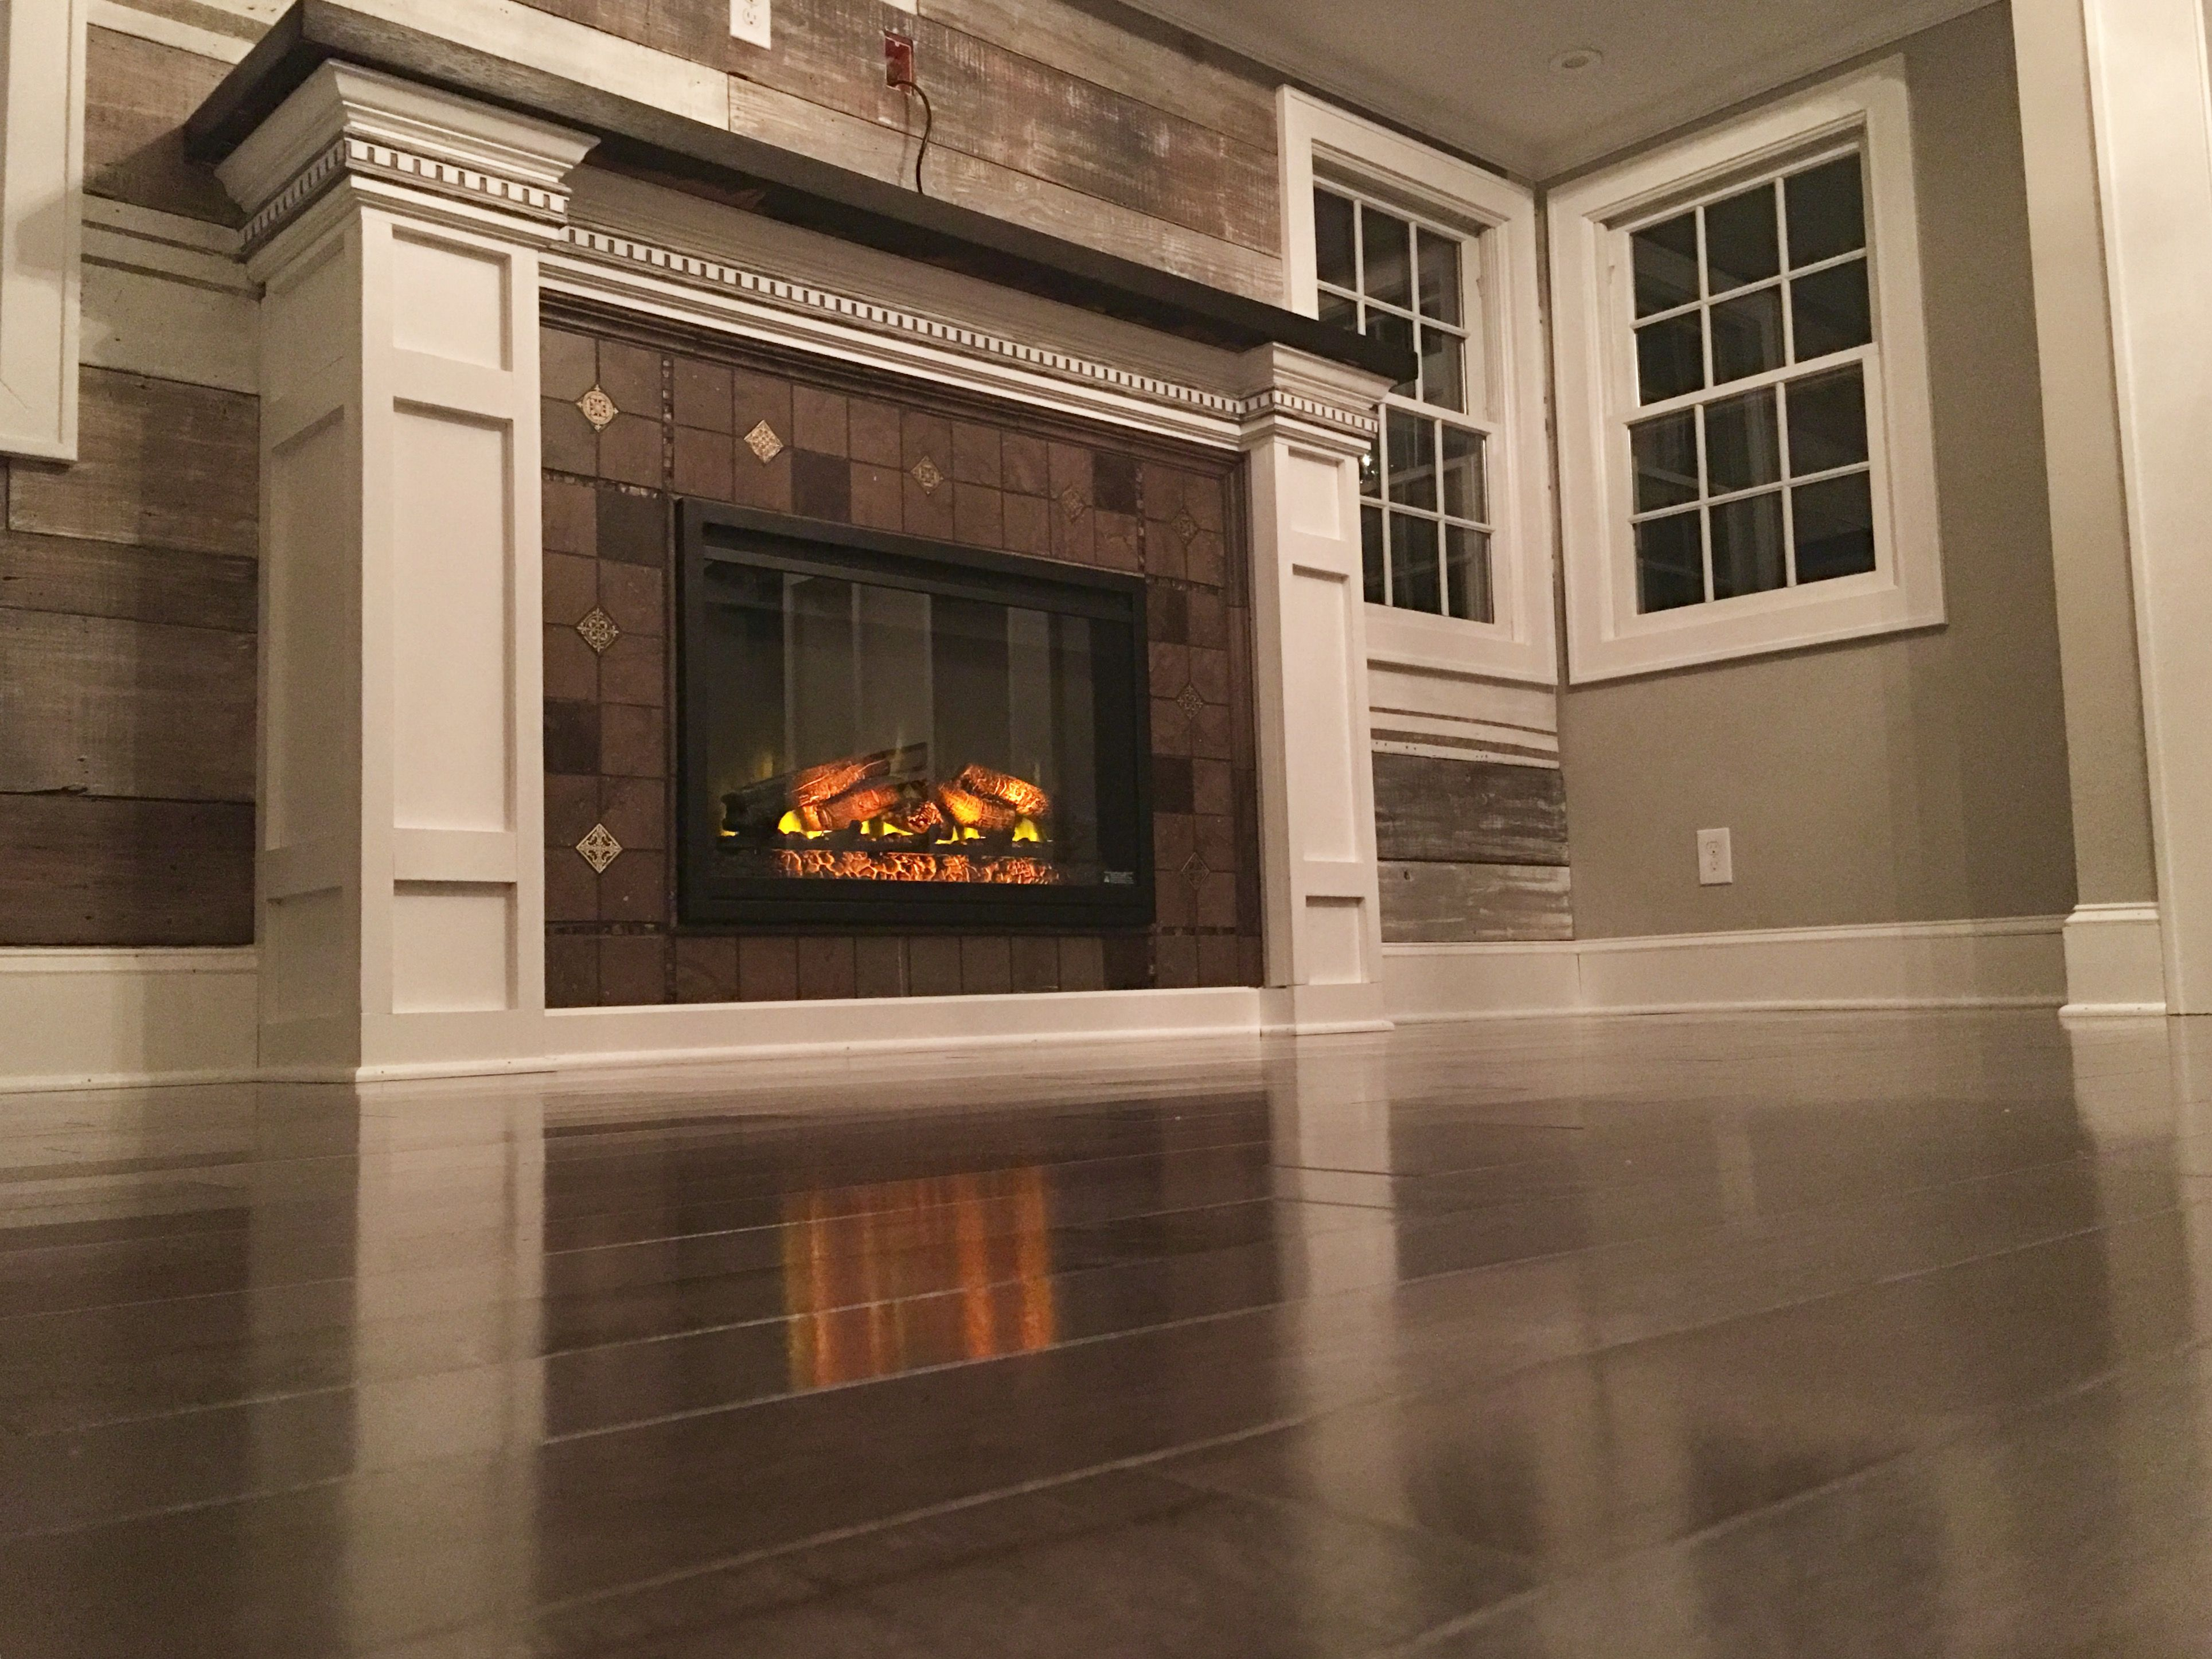 bw black free with inch lifestyle inches mantle shipping fireplace portablefireplace wash maxwell fireplaces grand electric res hi